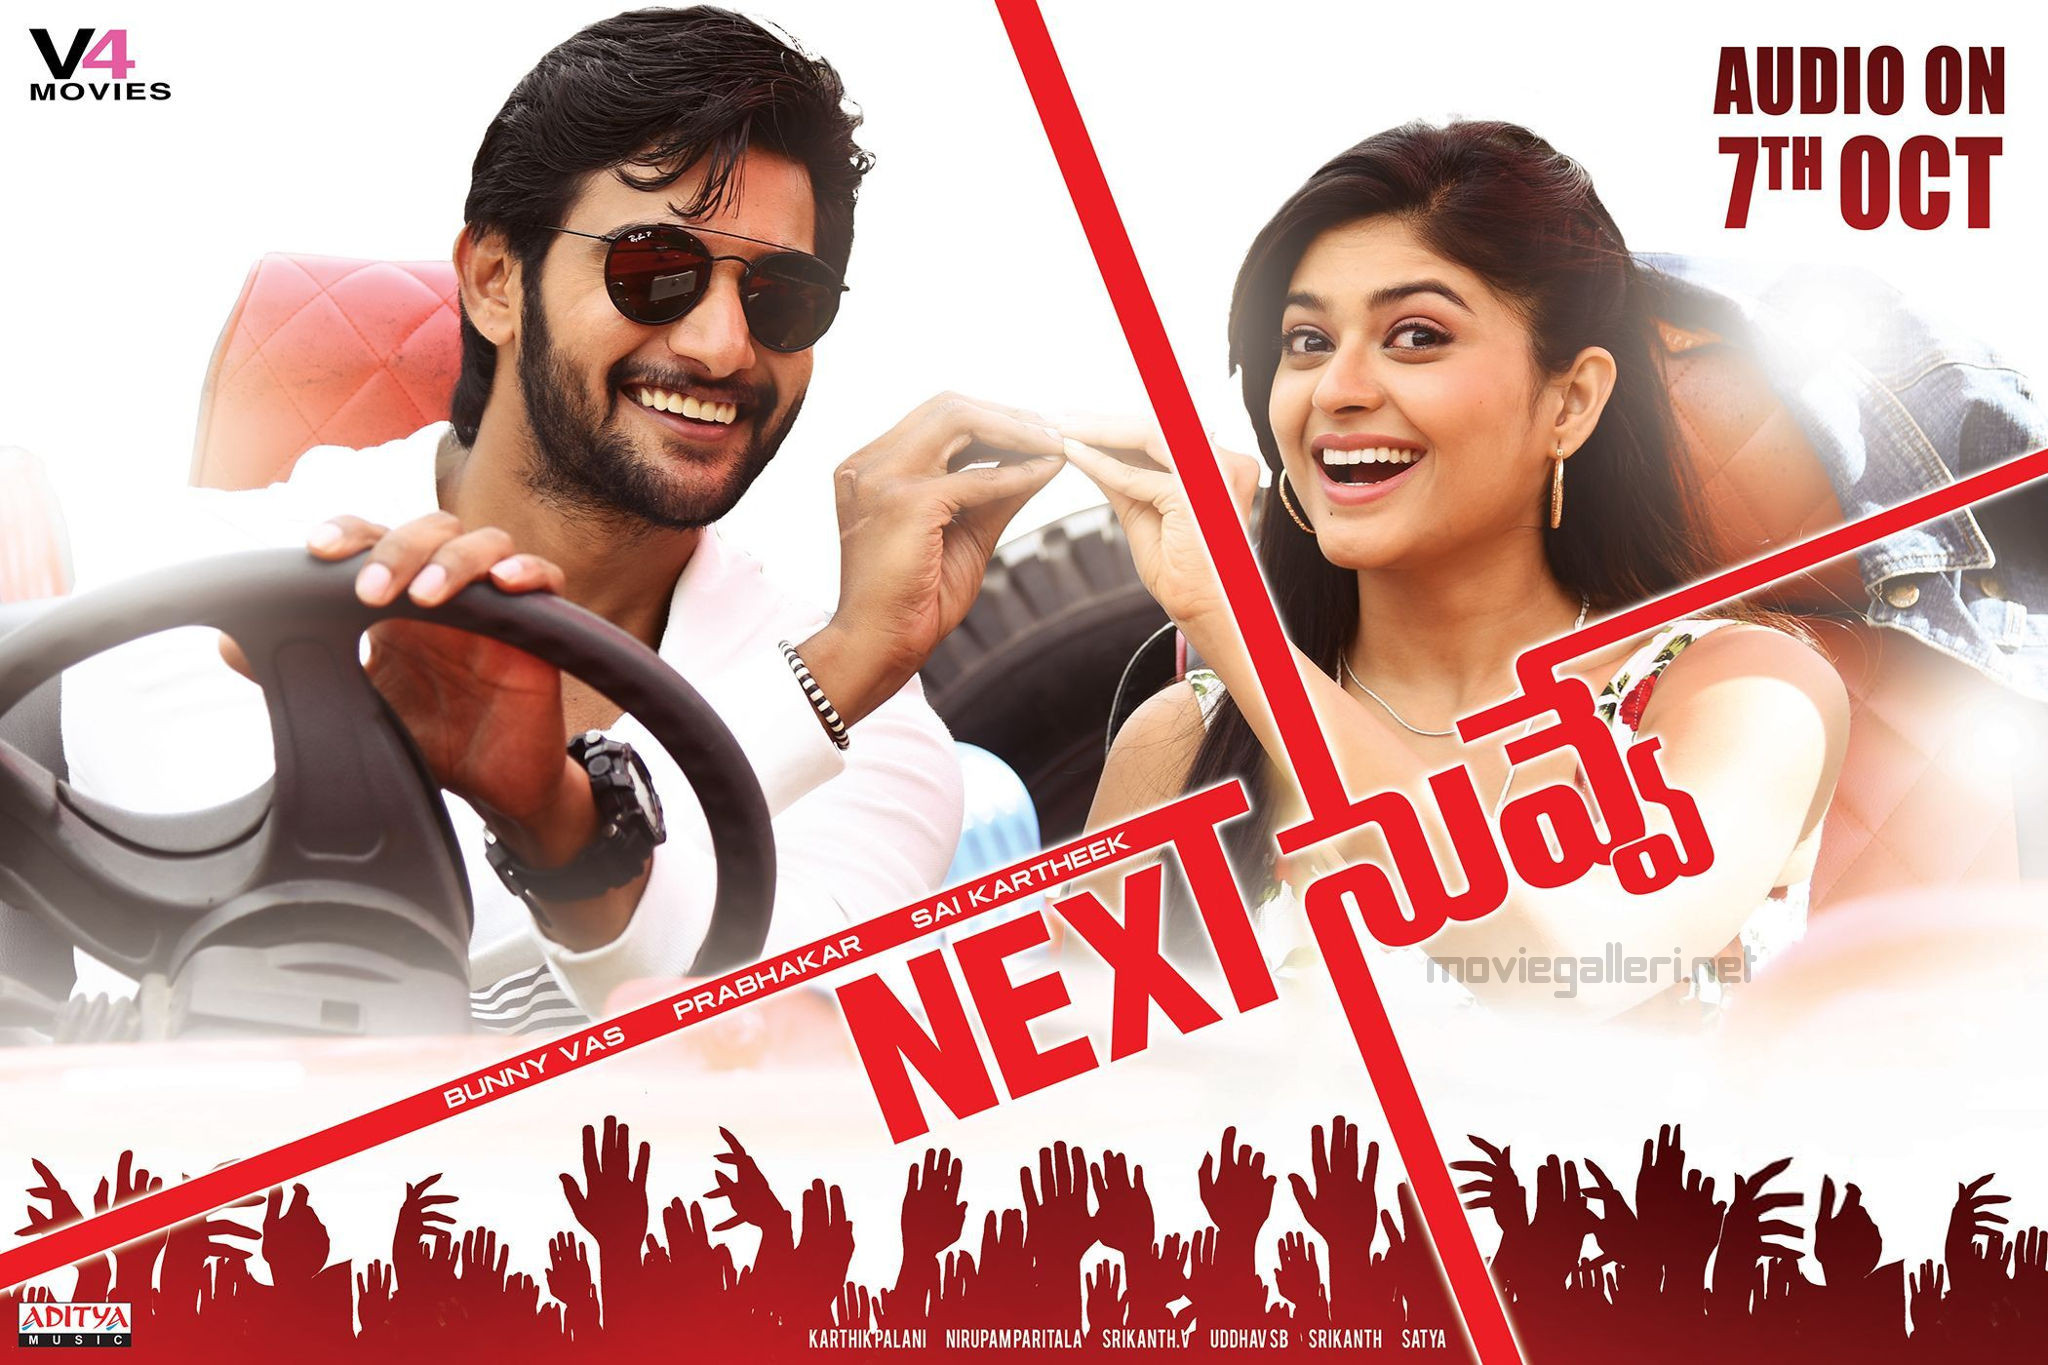 Aadi & Vaibhavi Shandilya @ Next Nuvve Movie Audio on 7th Oct Wallpaper